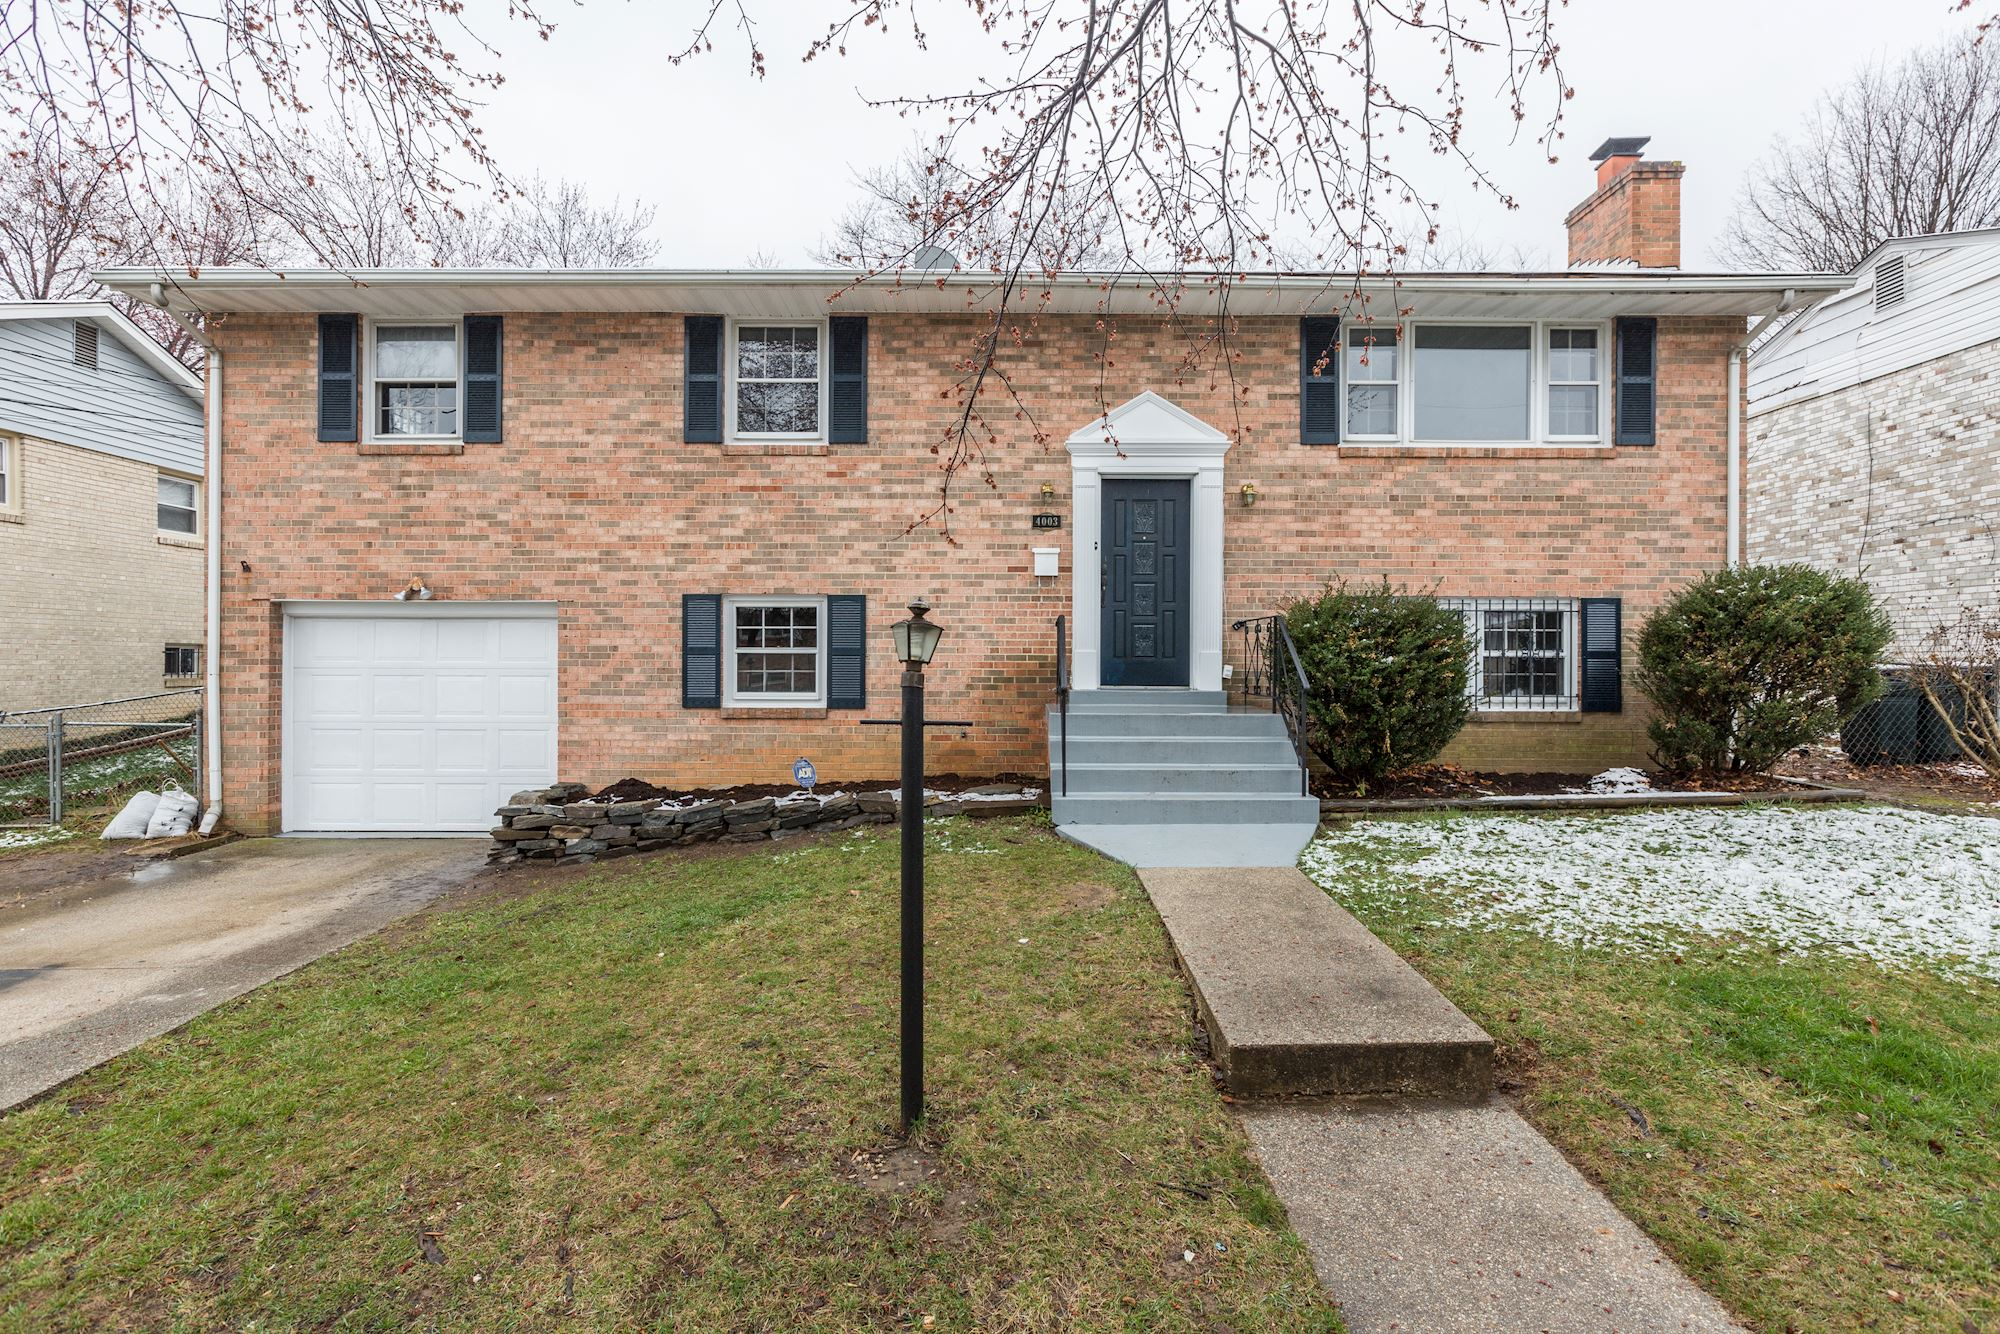 NEW LISTING: 4 BD Temple Hills Home on Private Cul De Sac